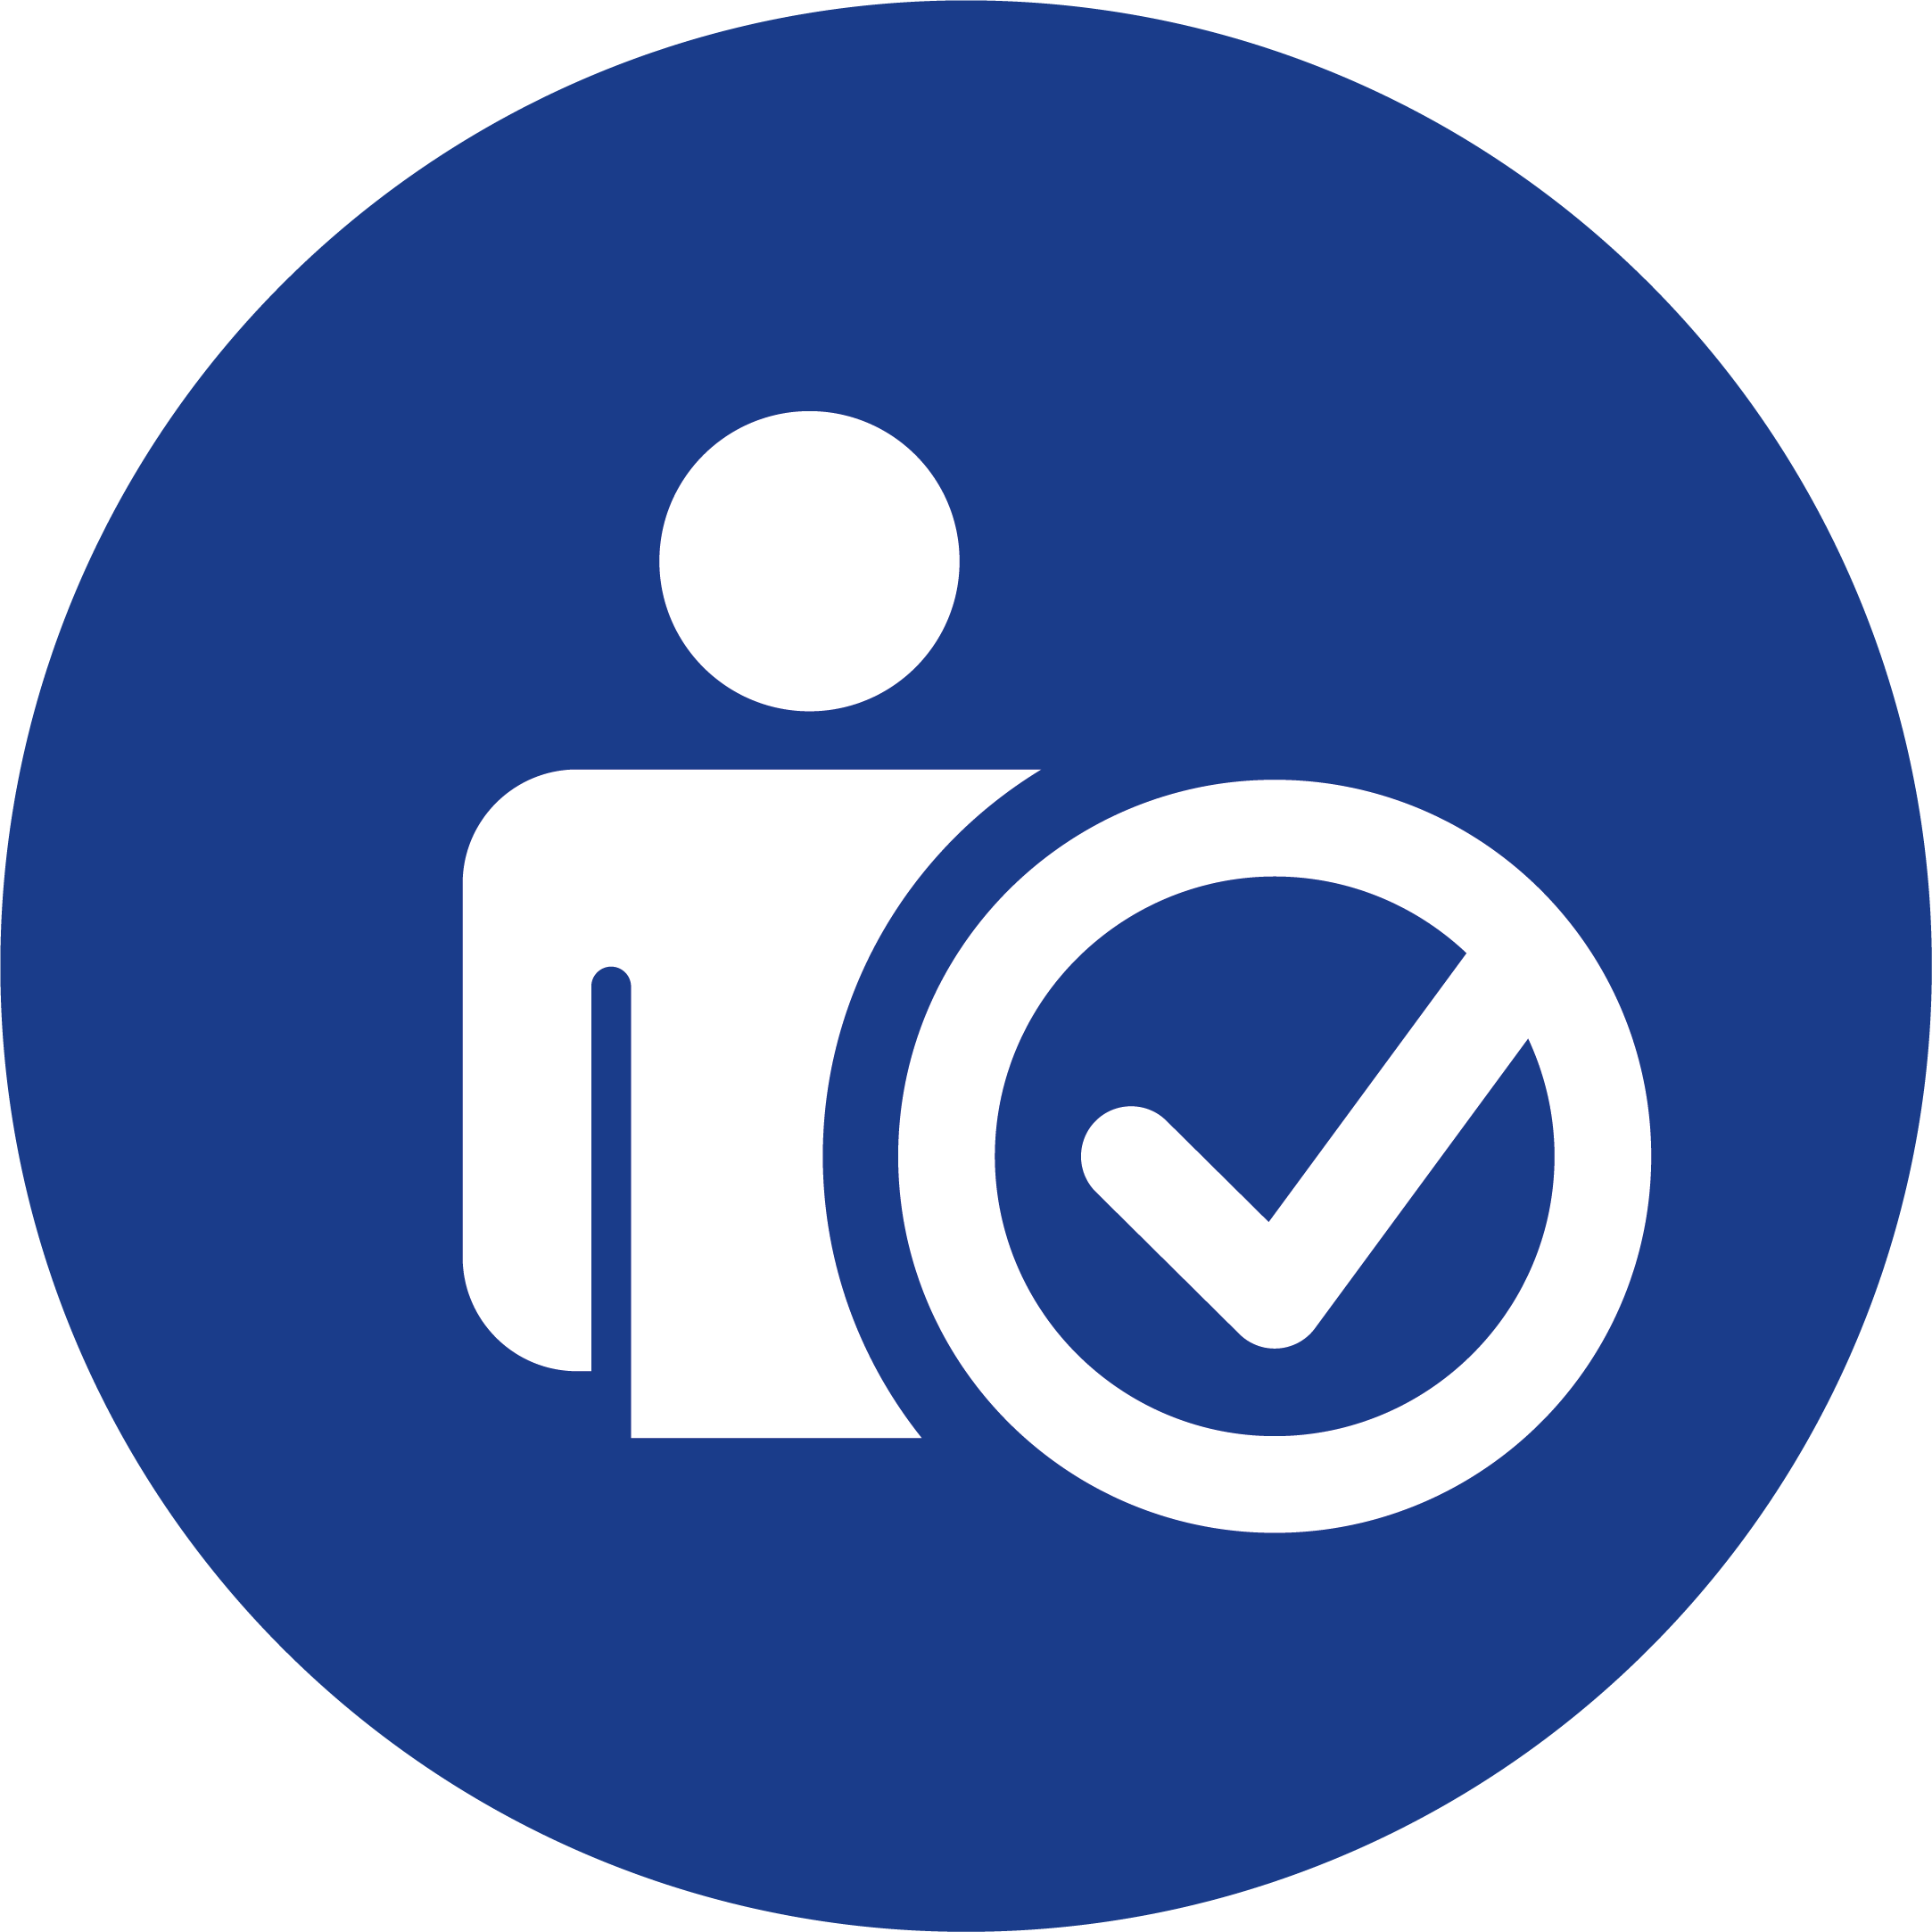 20180810 RPC Consulting GmbH Icon Haken blau weiß.png